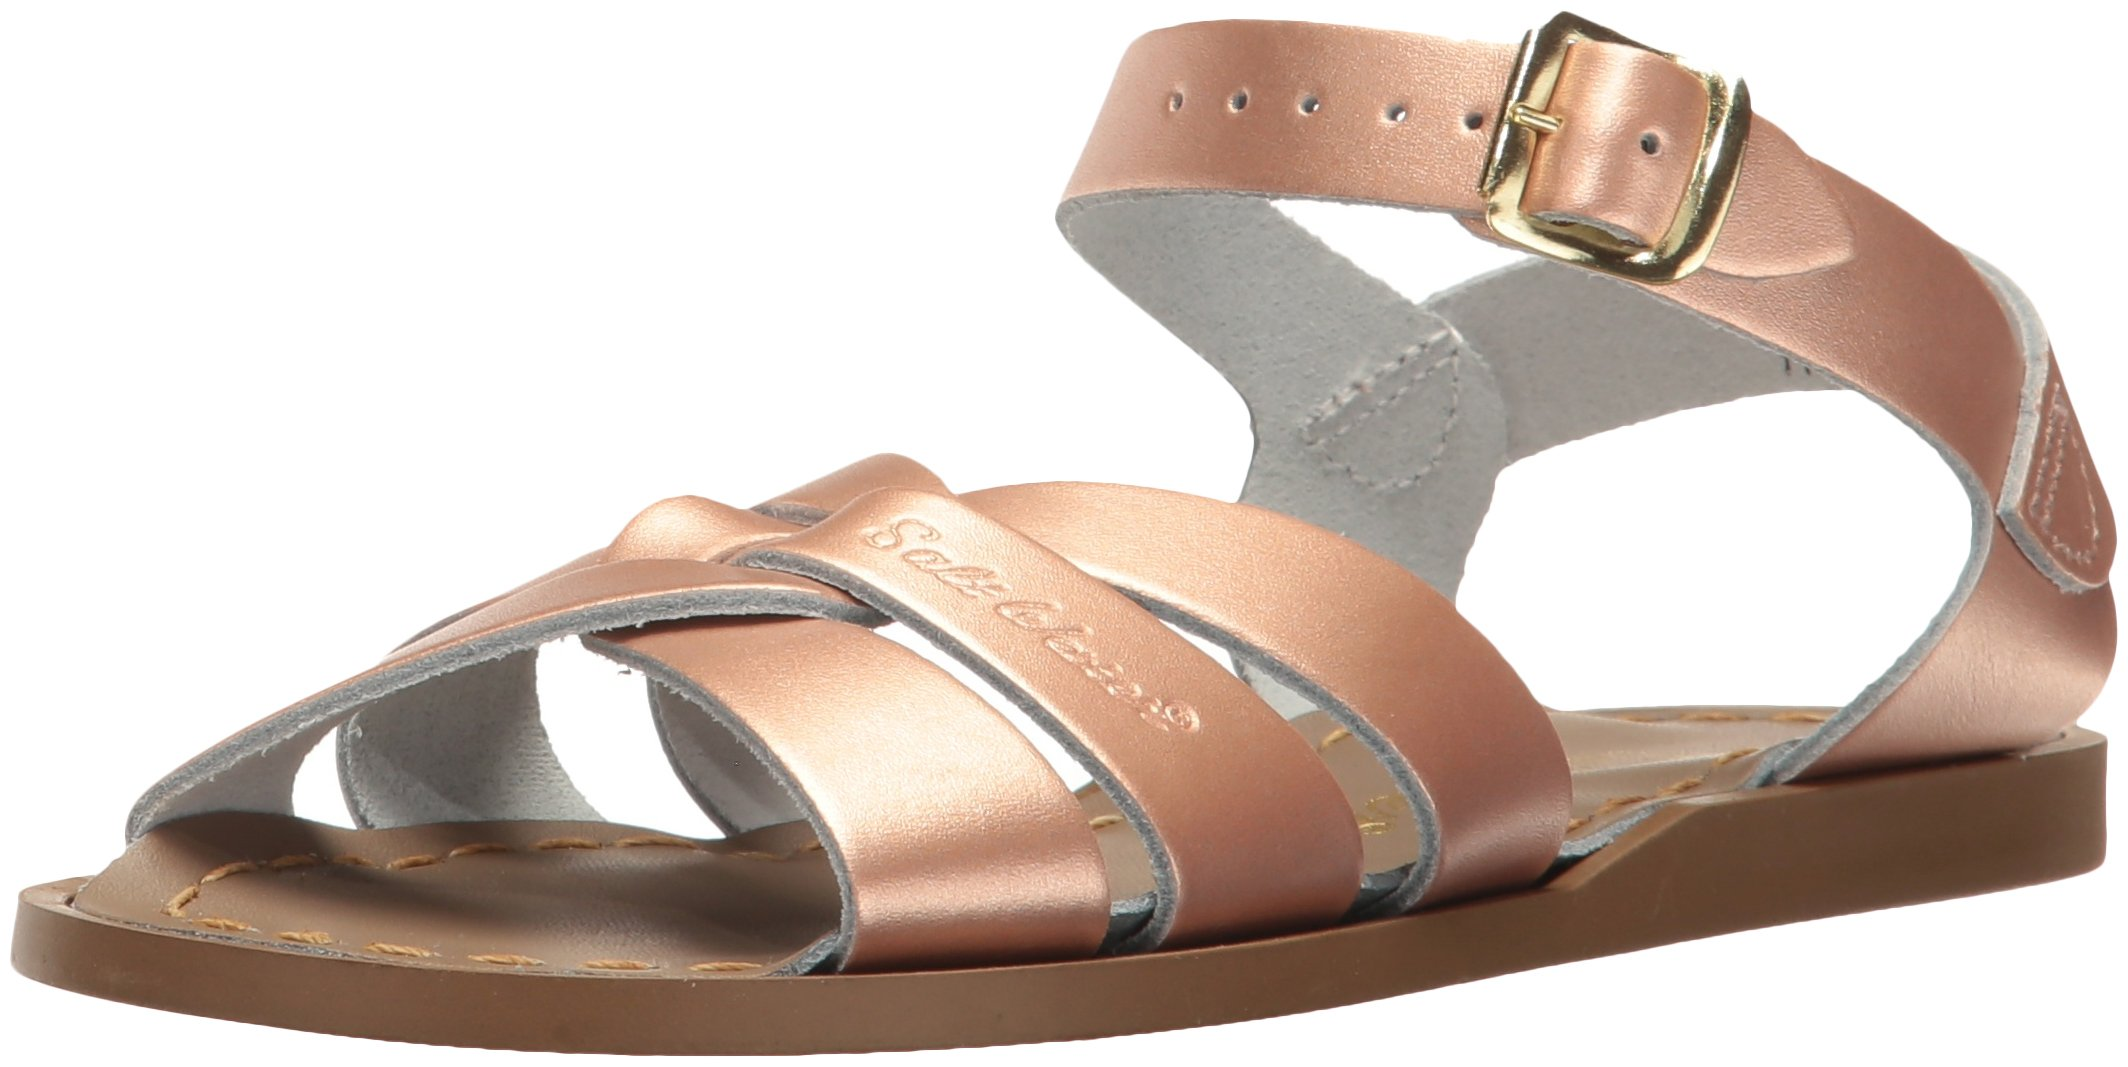 Salt Water Sandals by HOY Shoe Girls' Salt Water Original Flat Sandal, Rose Gold, 10 M US Toddler